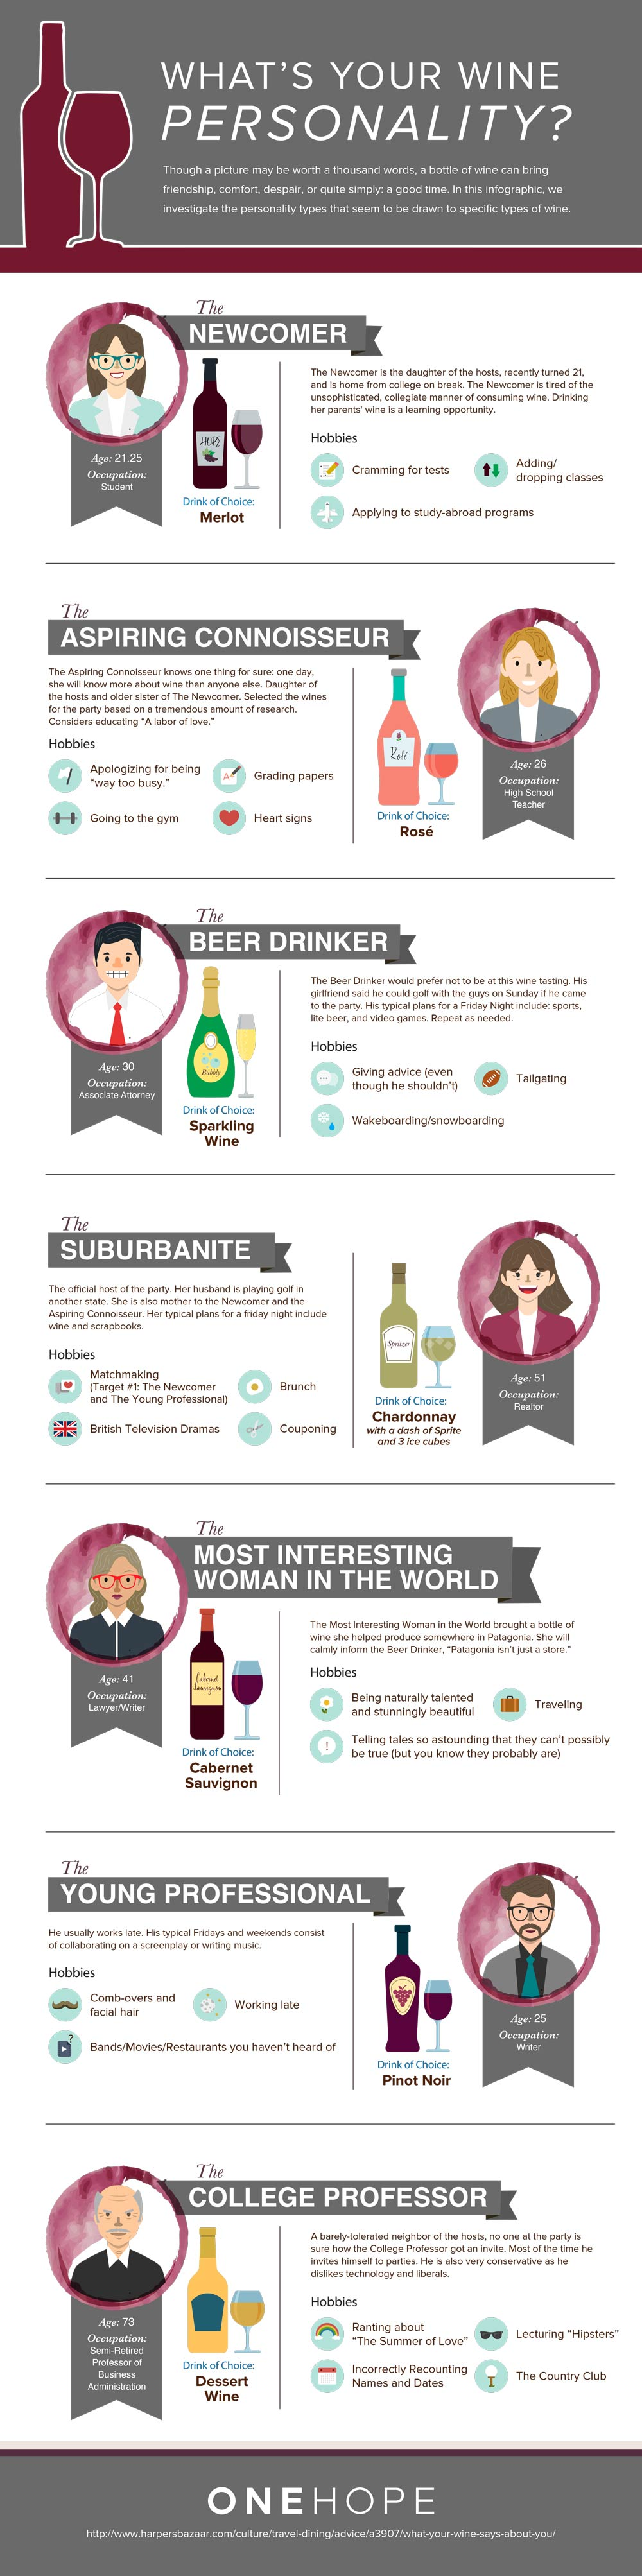 wine-personality-types